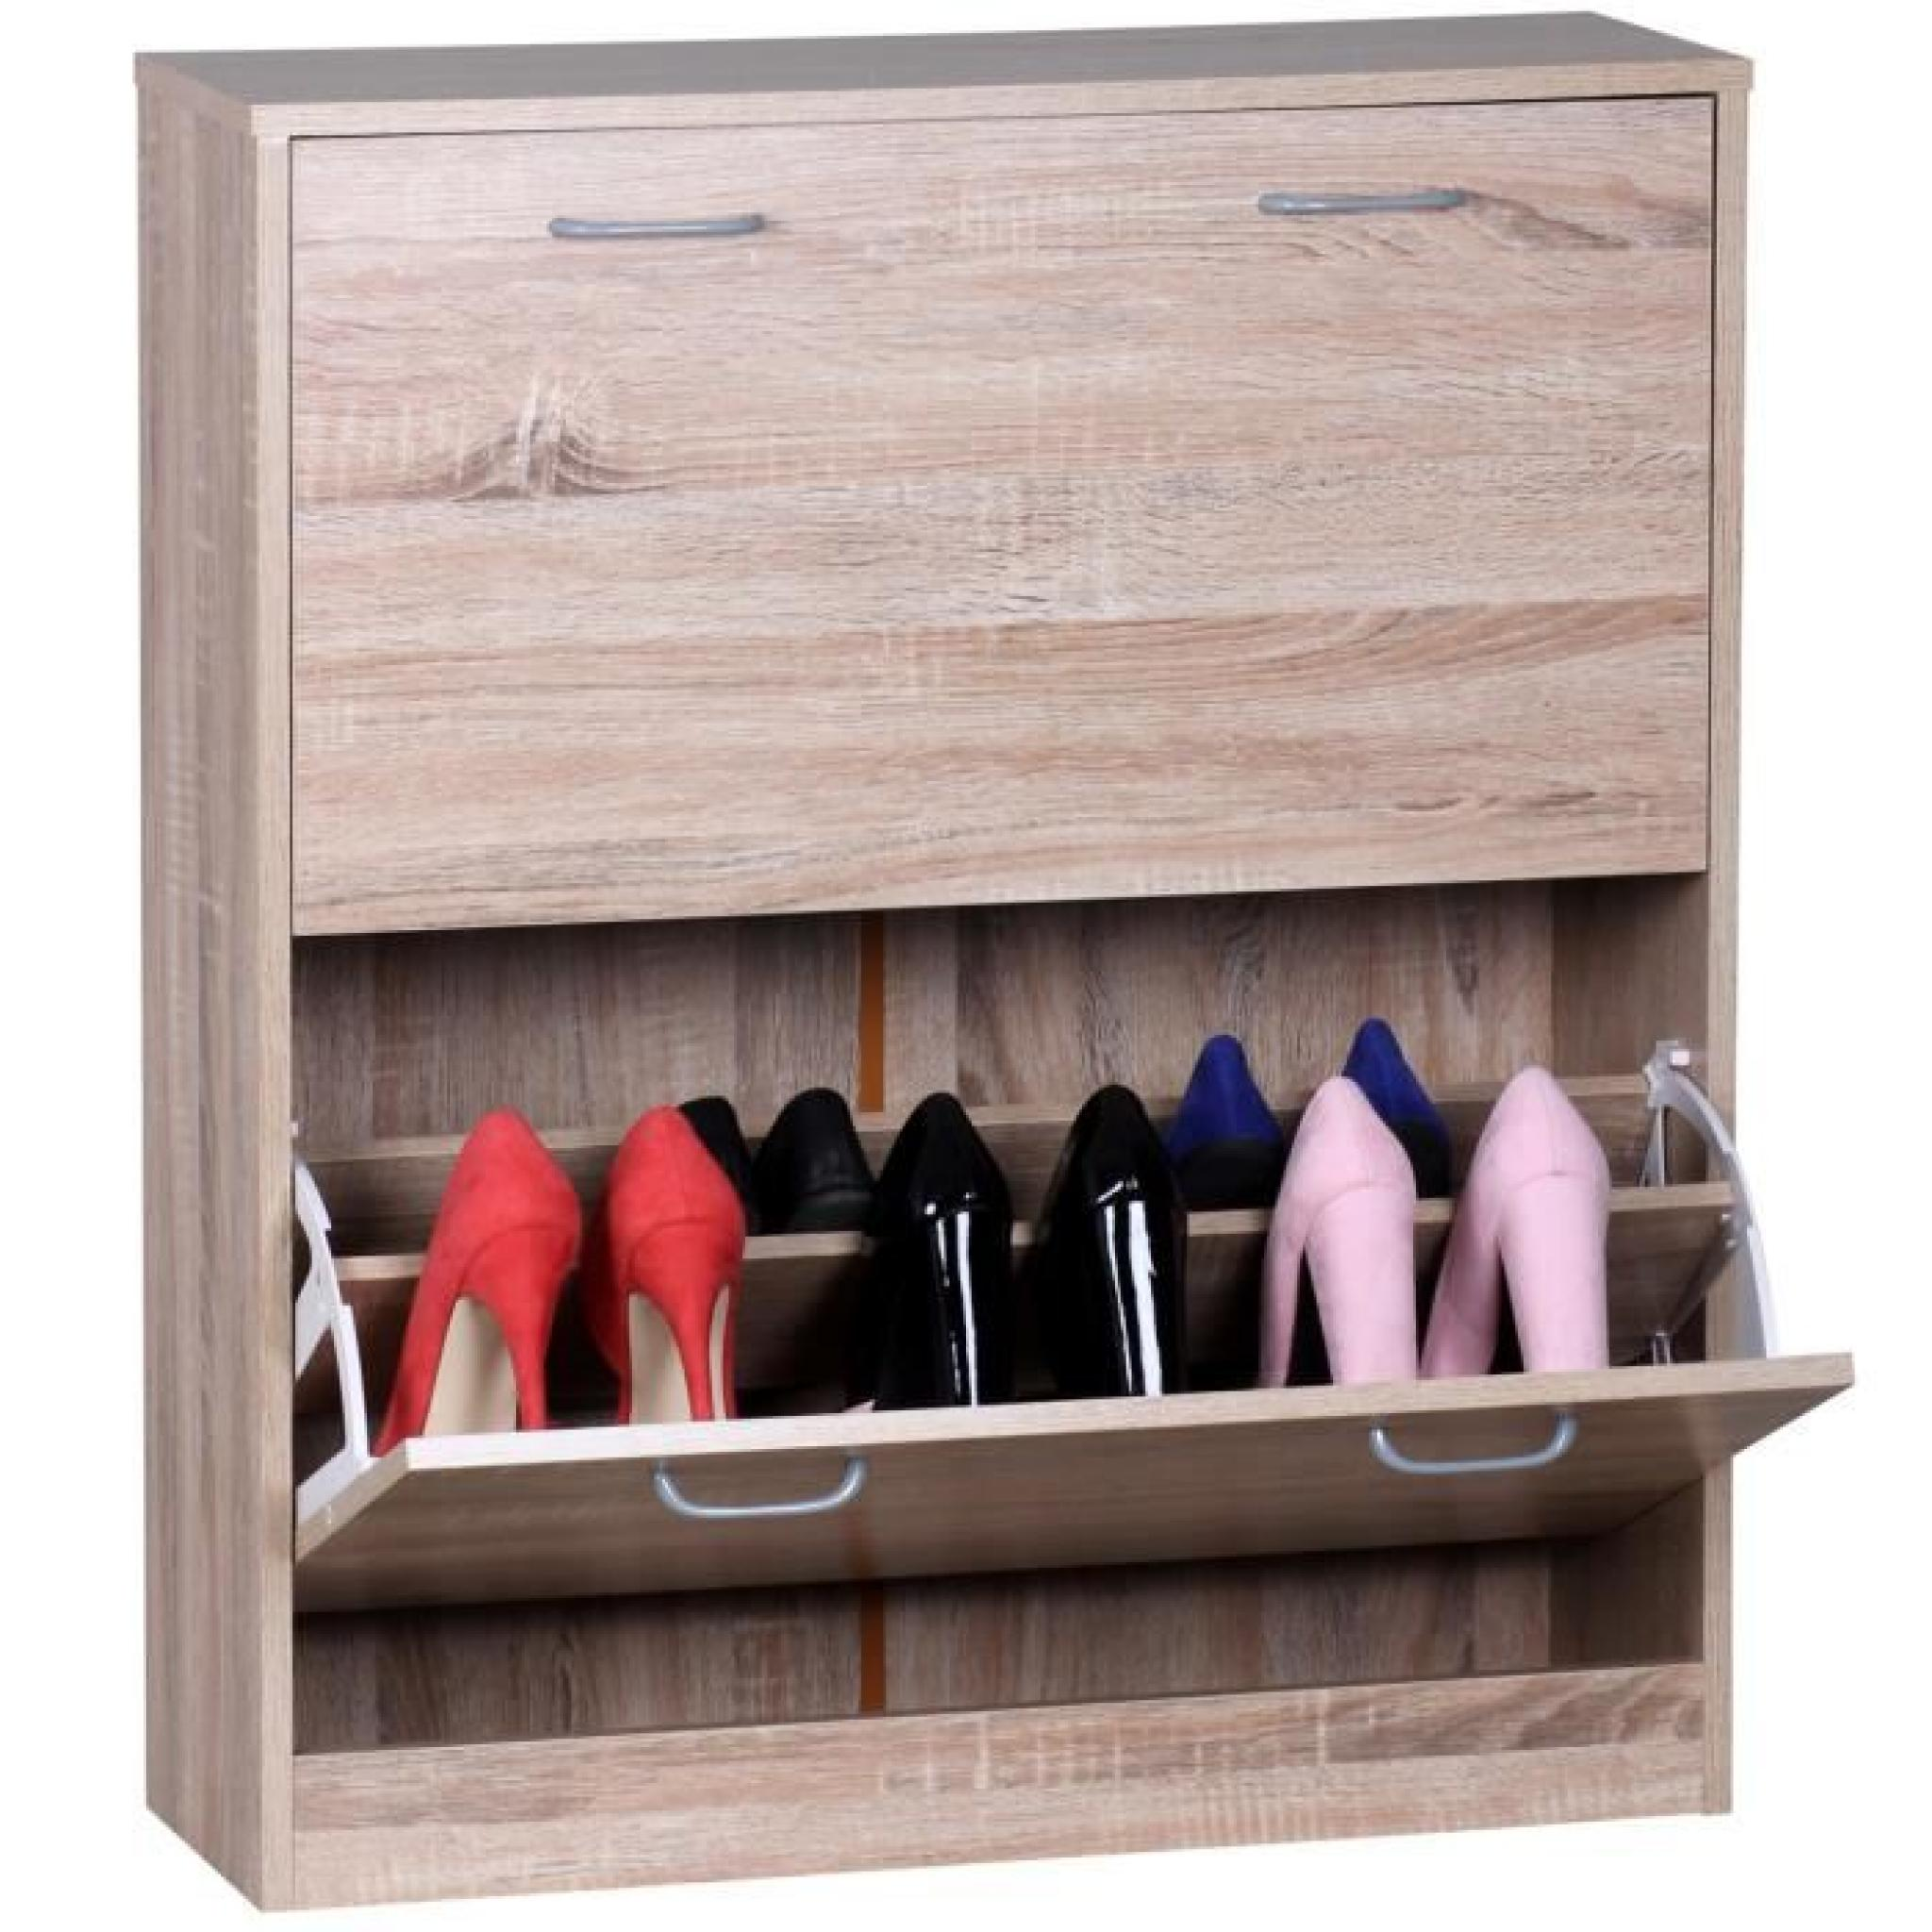 meuble chaussures en bois agglom r couleur ch ne 87 x 75 x 24 cm achat vente meuble. Black Bedroom Furniture Sets. Home Design Ideas